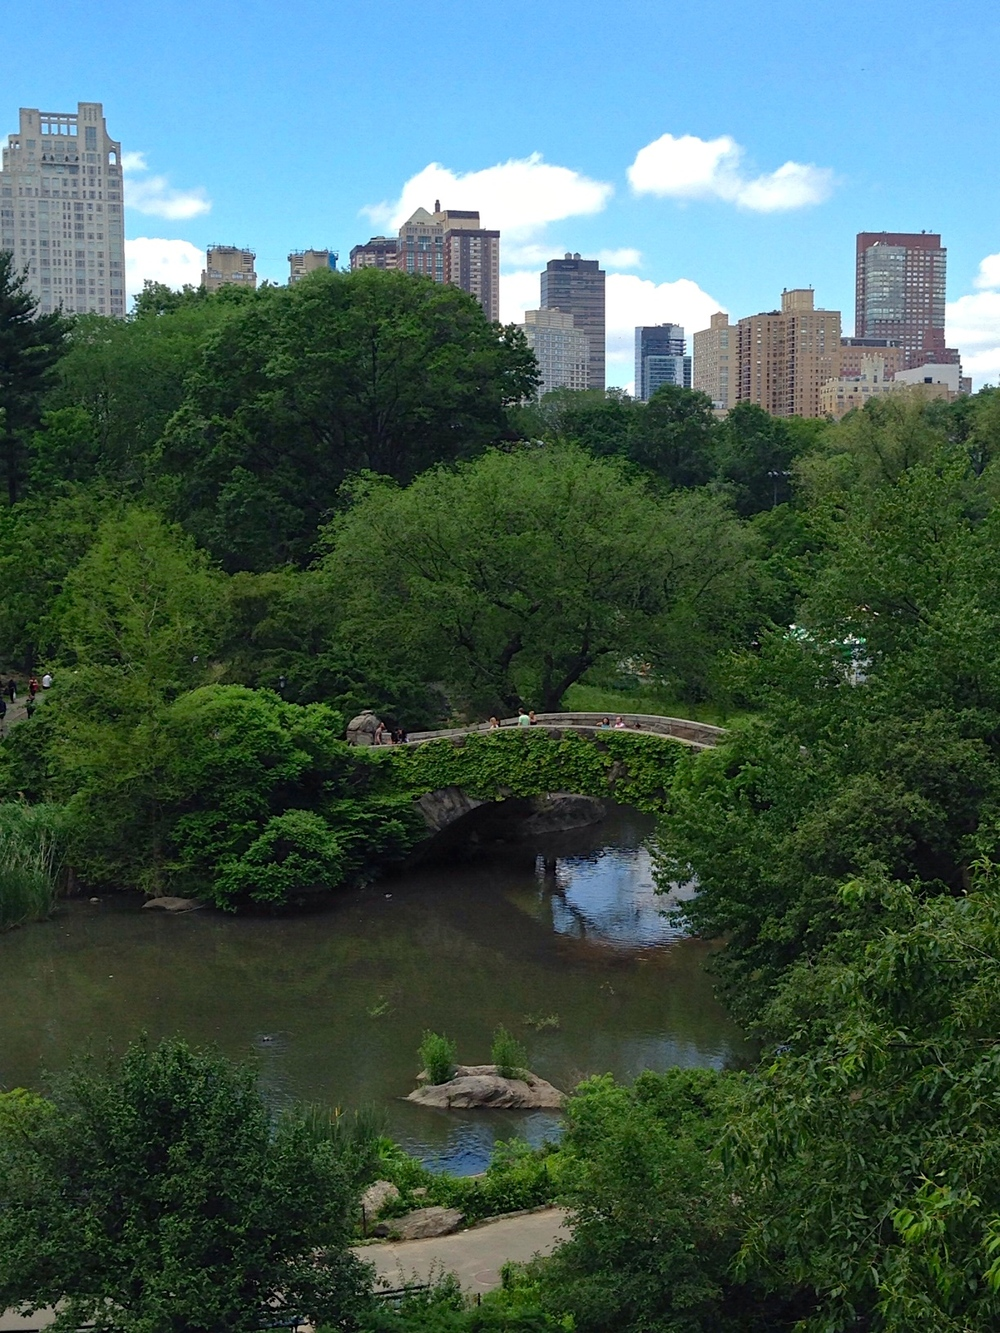 The Gapstow Bridge at Central Park South. (Photo: Joseph Kellard)